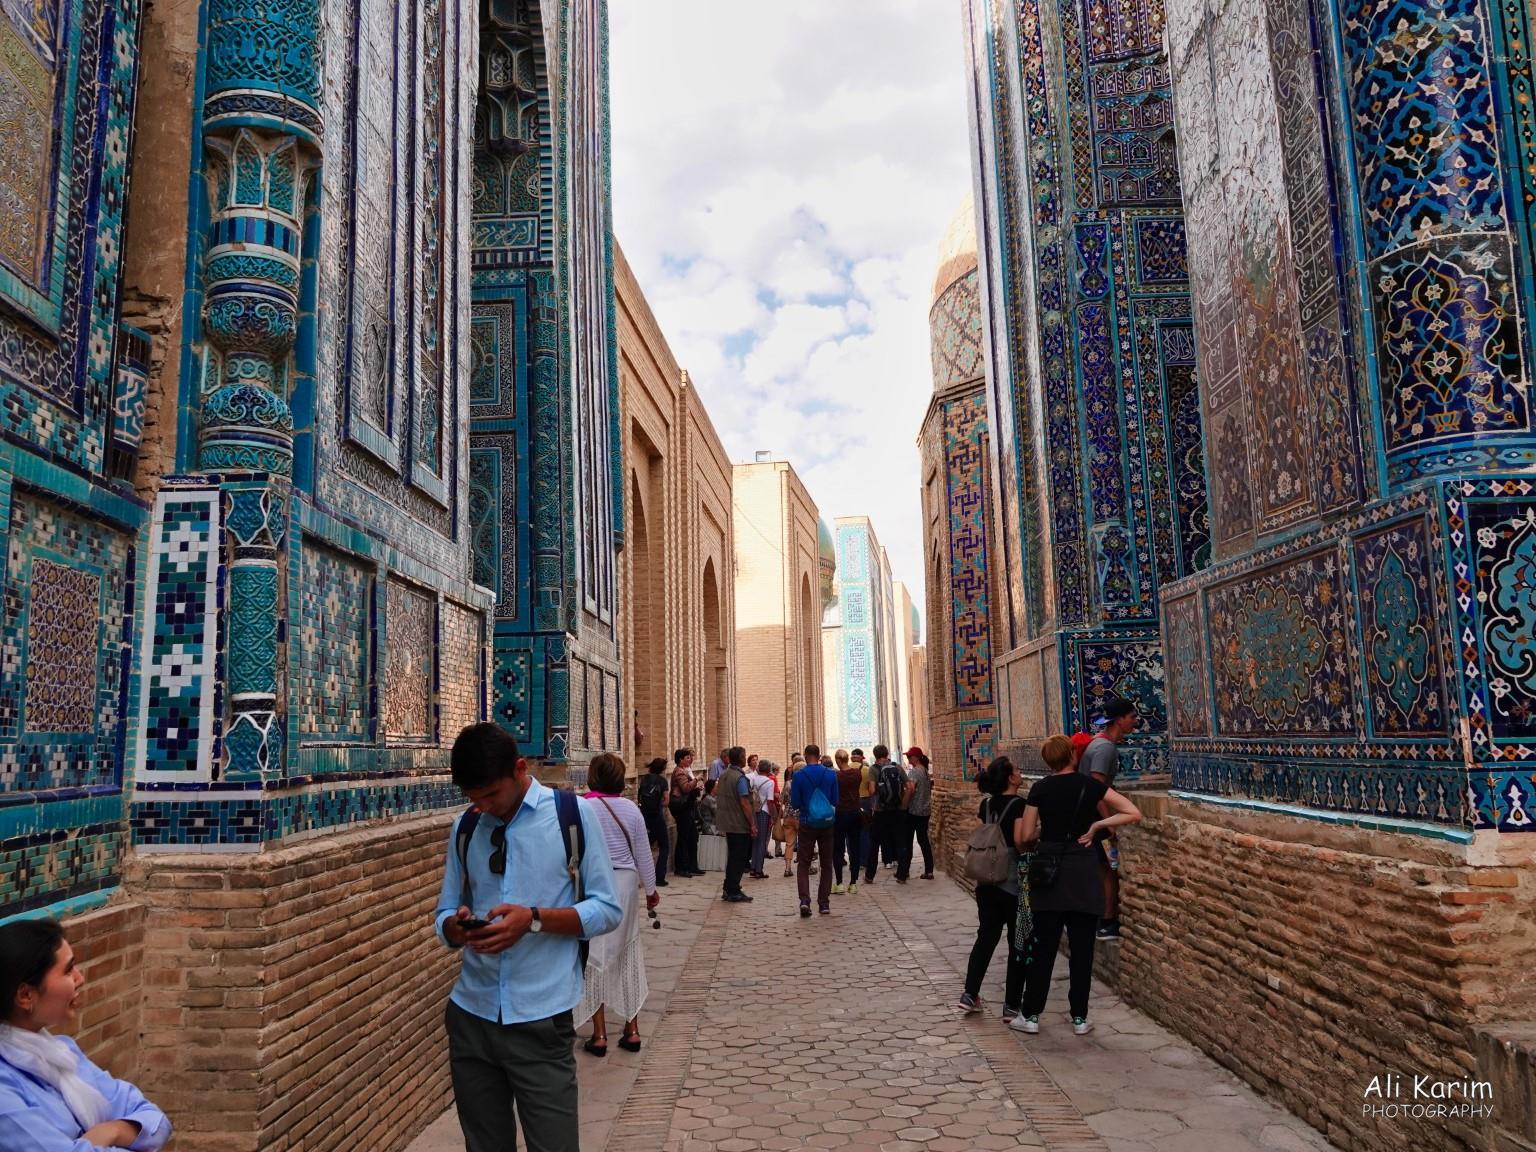 More Samarkand, The multiple structures on either side (mausoleums) housed the remains of the nobles from 11th century on